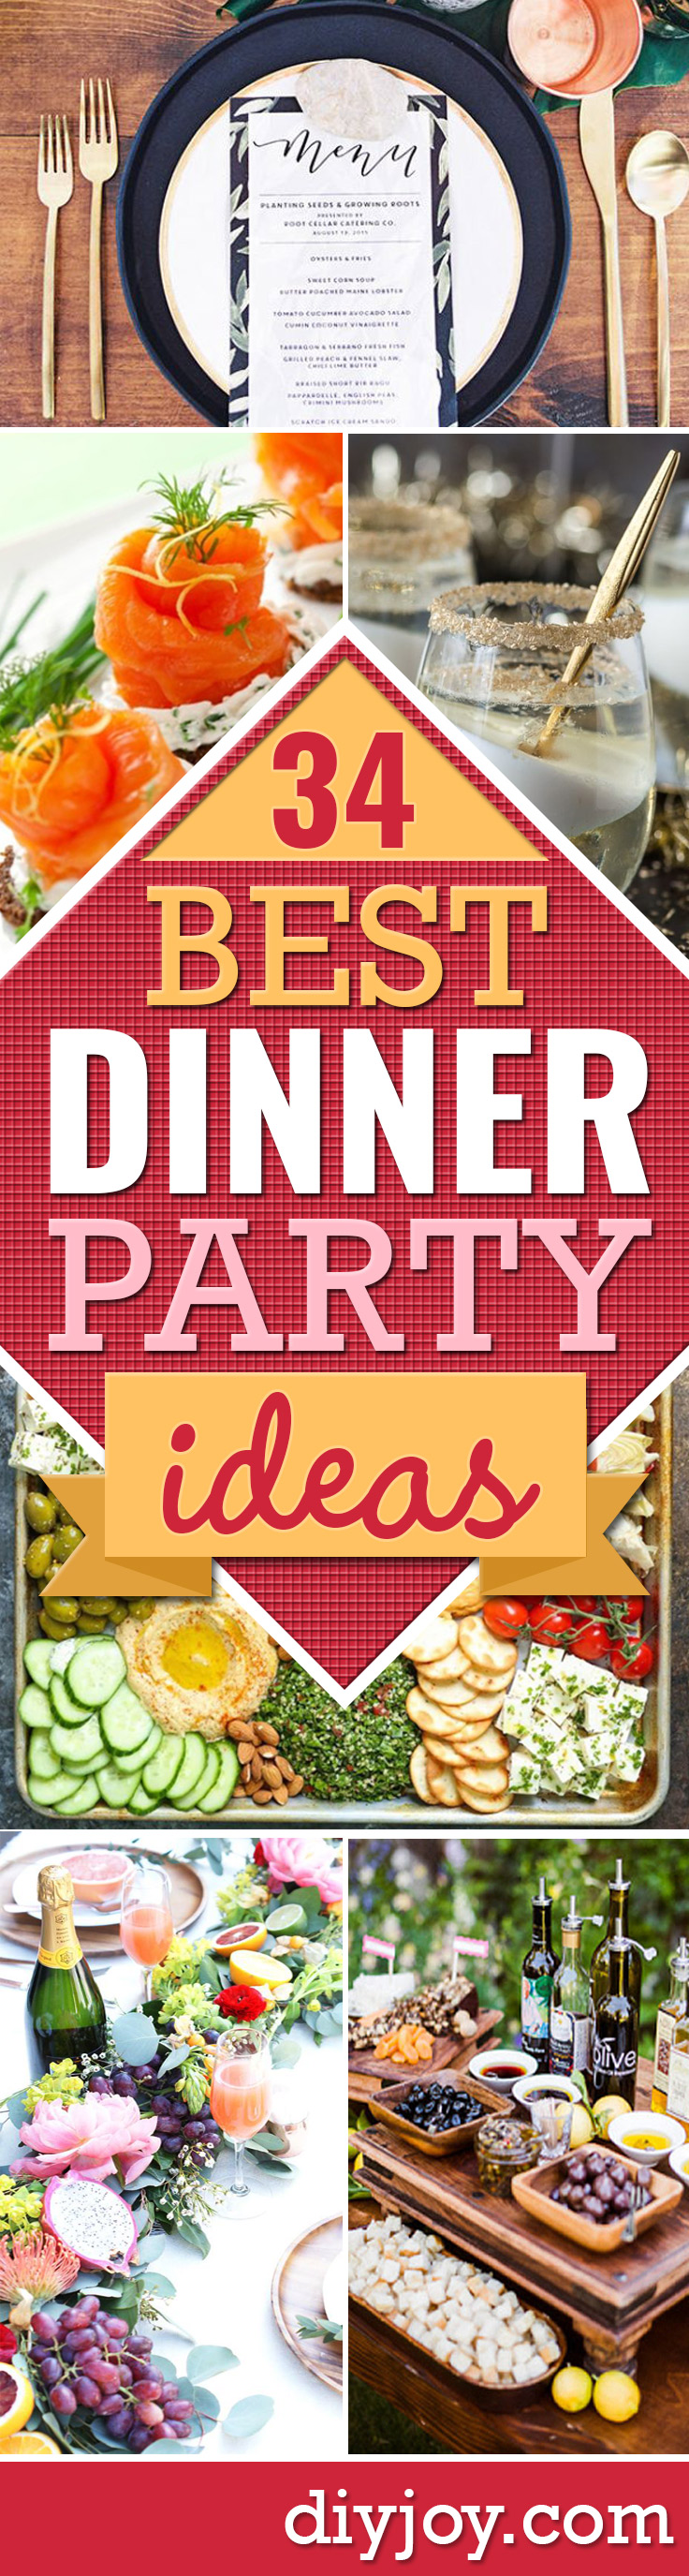 Best Dinner Party Ideas - Best Recipes for Foods to Serve, Casseroles, Finger Foods, Desserts and Appetizers- Place Settings and Cards, Centerpieces, Table Decor and Recipe Ideas for Supper Clubs and Dinner Parties http://diyjoy.com/best-dinner-party-ideas